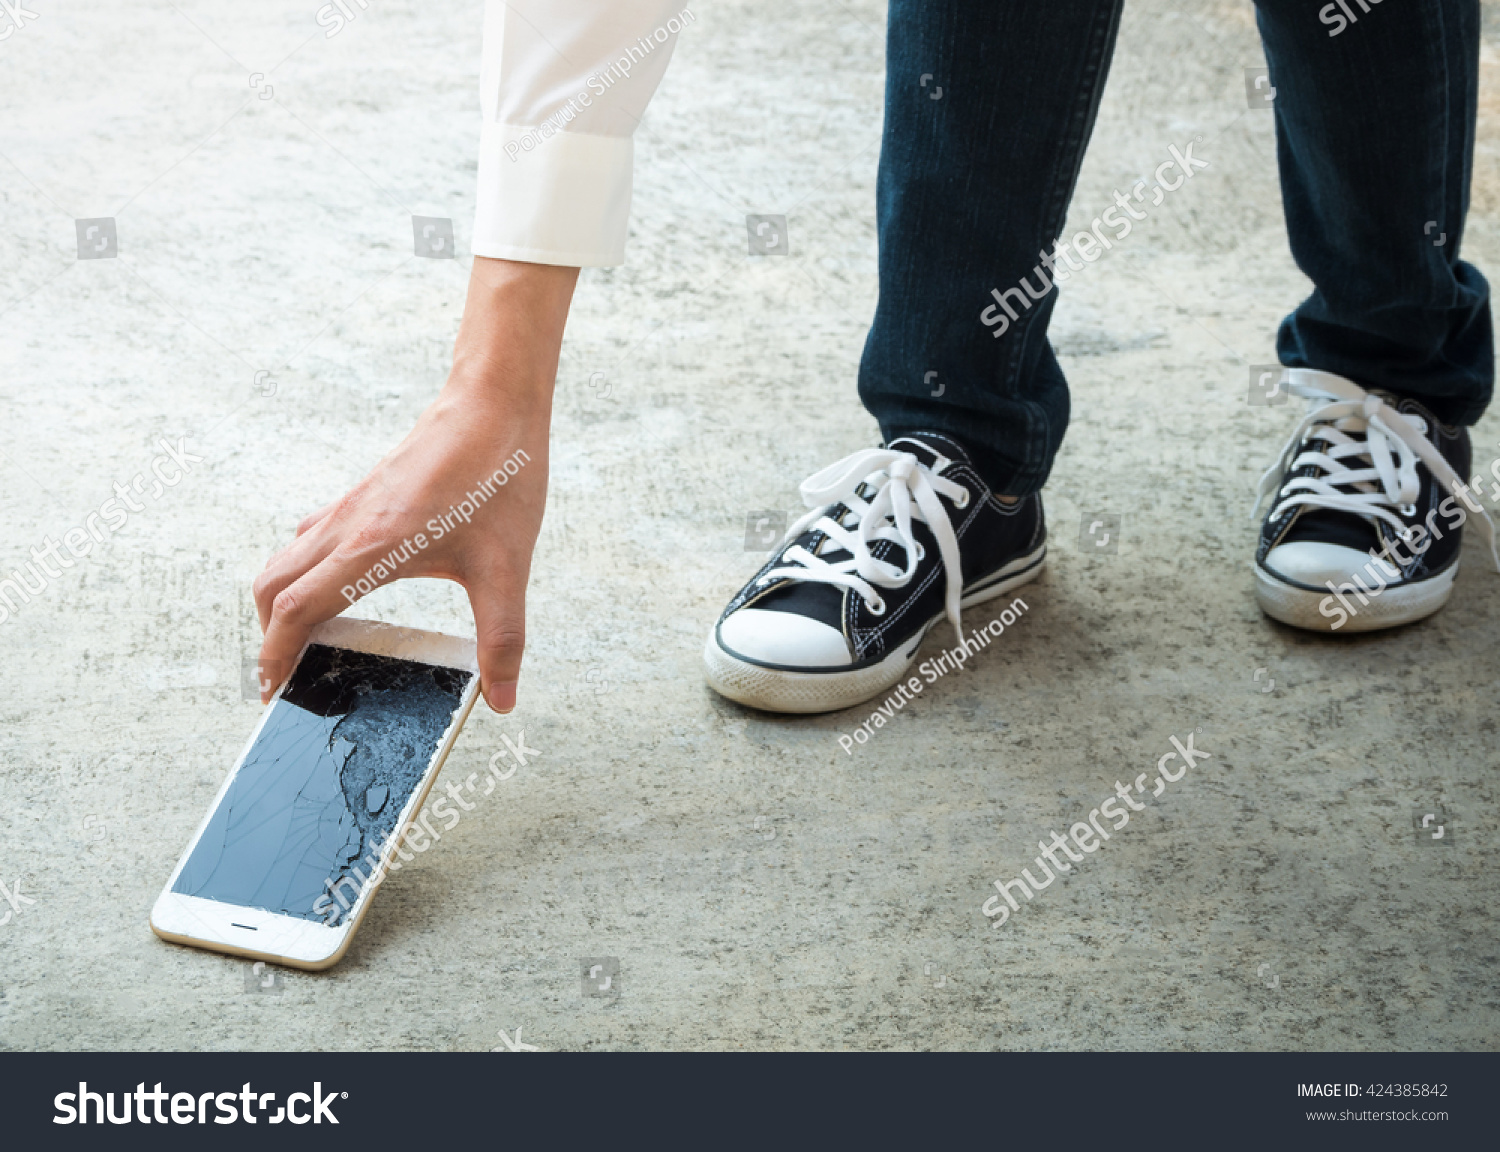 Image result for broken android screen on the ground,scratch